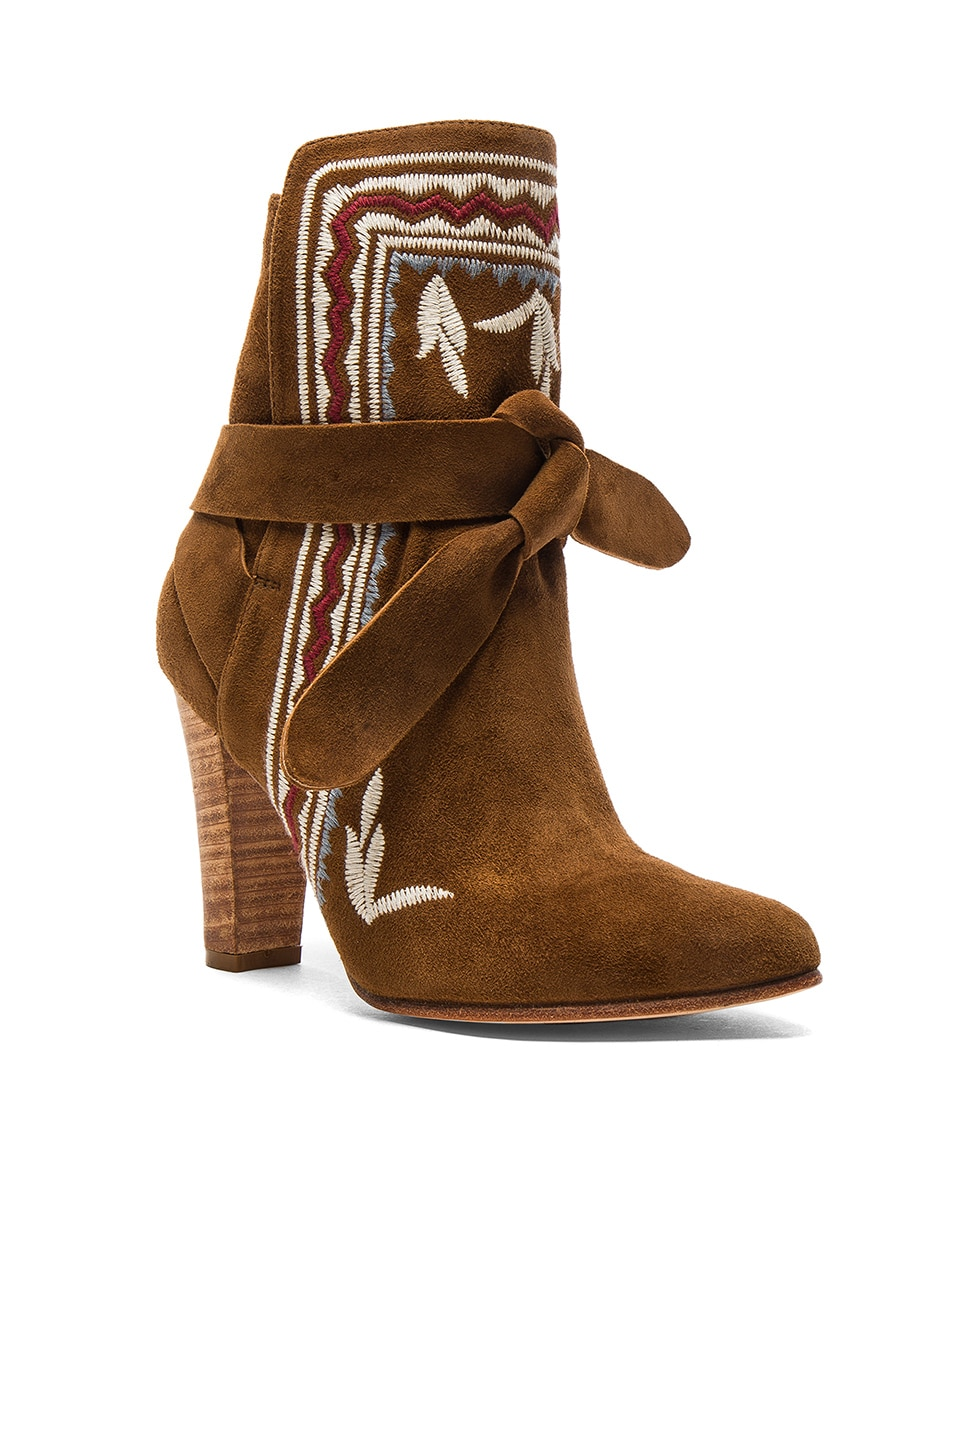 Image 2 of Ulla Johnson Embroidered Suede Aggie Booties in Saddle Suede